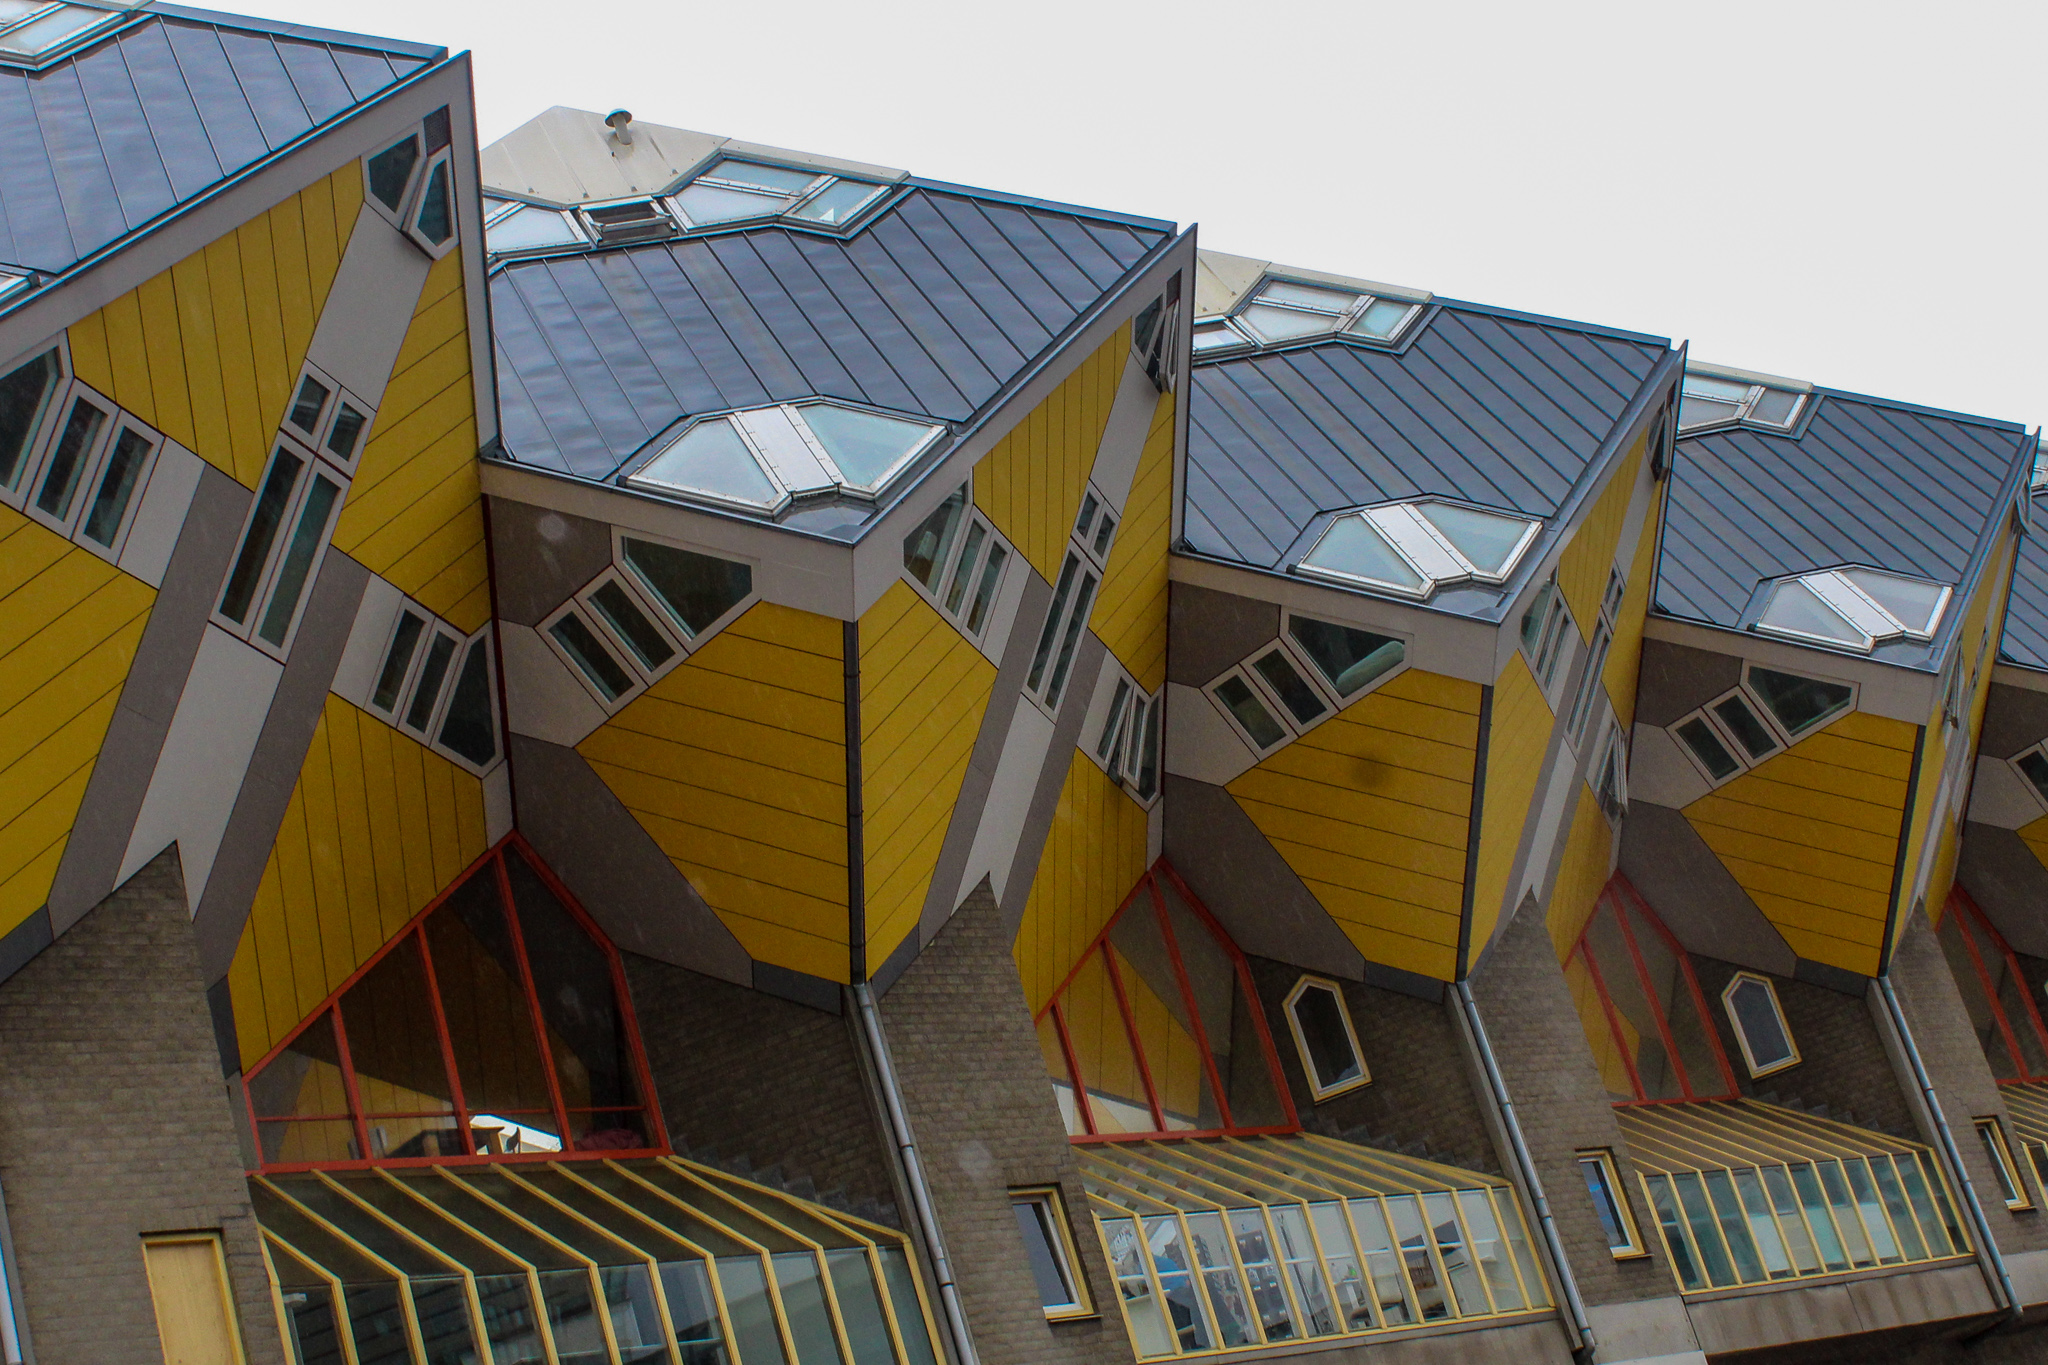 cube houses is a cool thing to see on a rotterdam one day trip